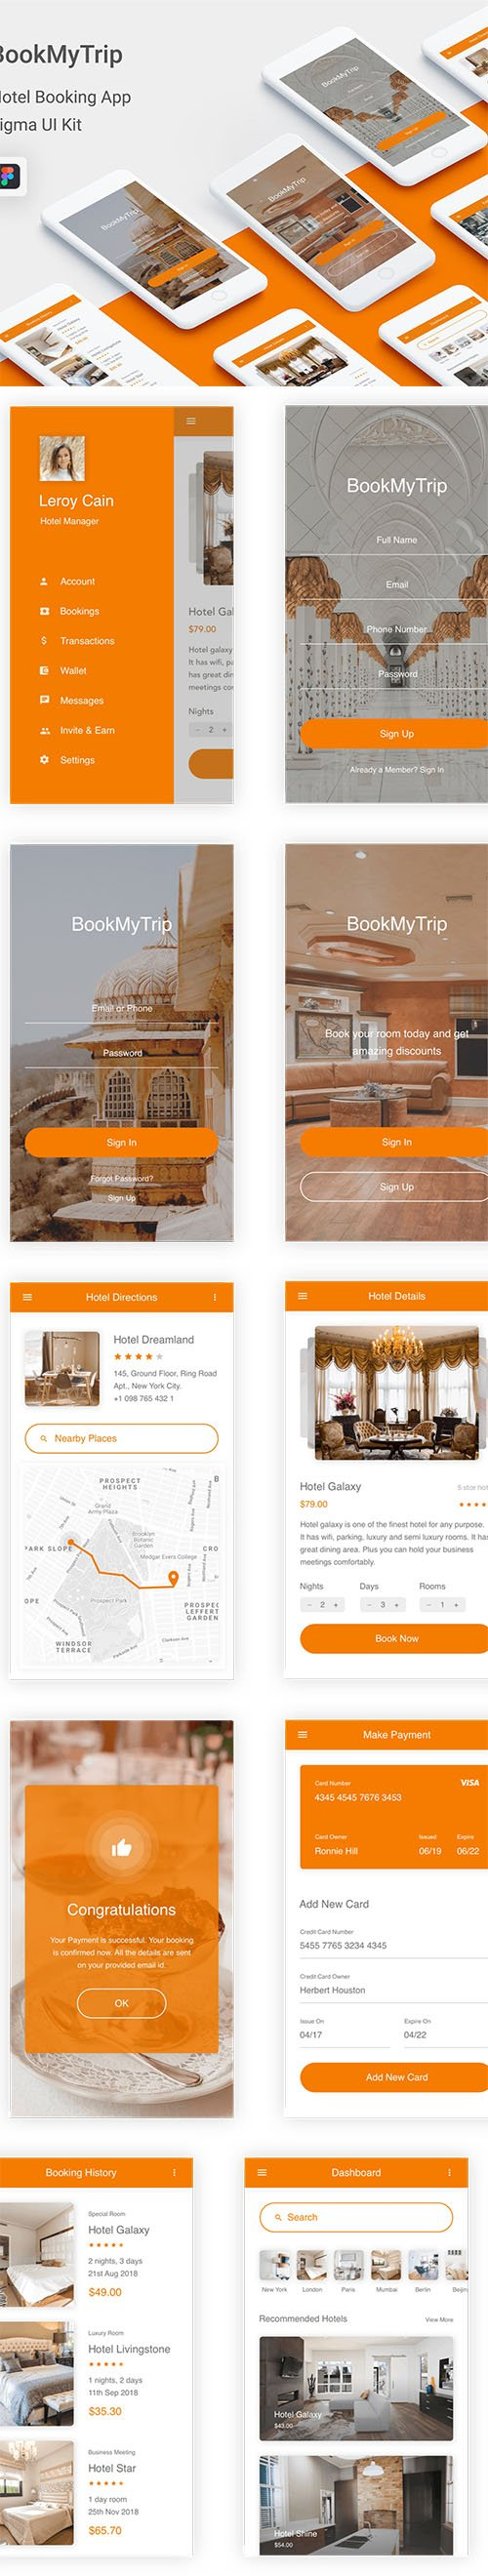 BookMyTrip - Hotel Booking UI Kit for FIG